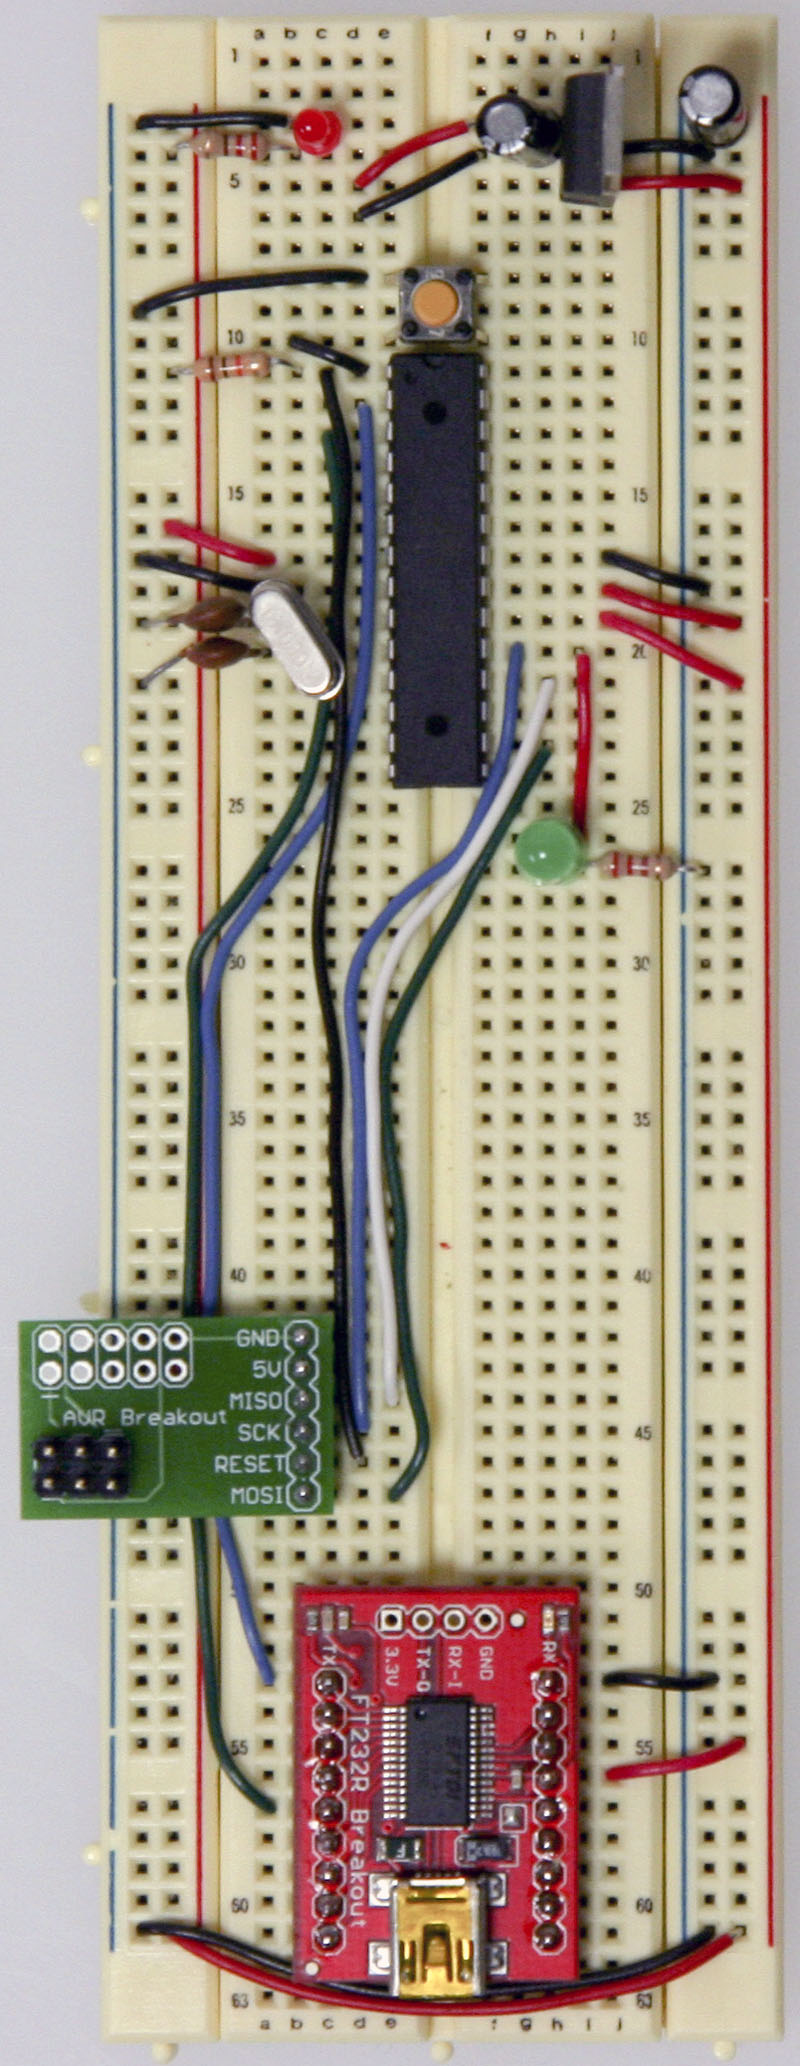 Arduino Setting Up An On A Breadboard Capacitors And Resistors Circuitbreadboard Wires Batteries Avrwires